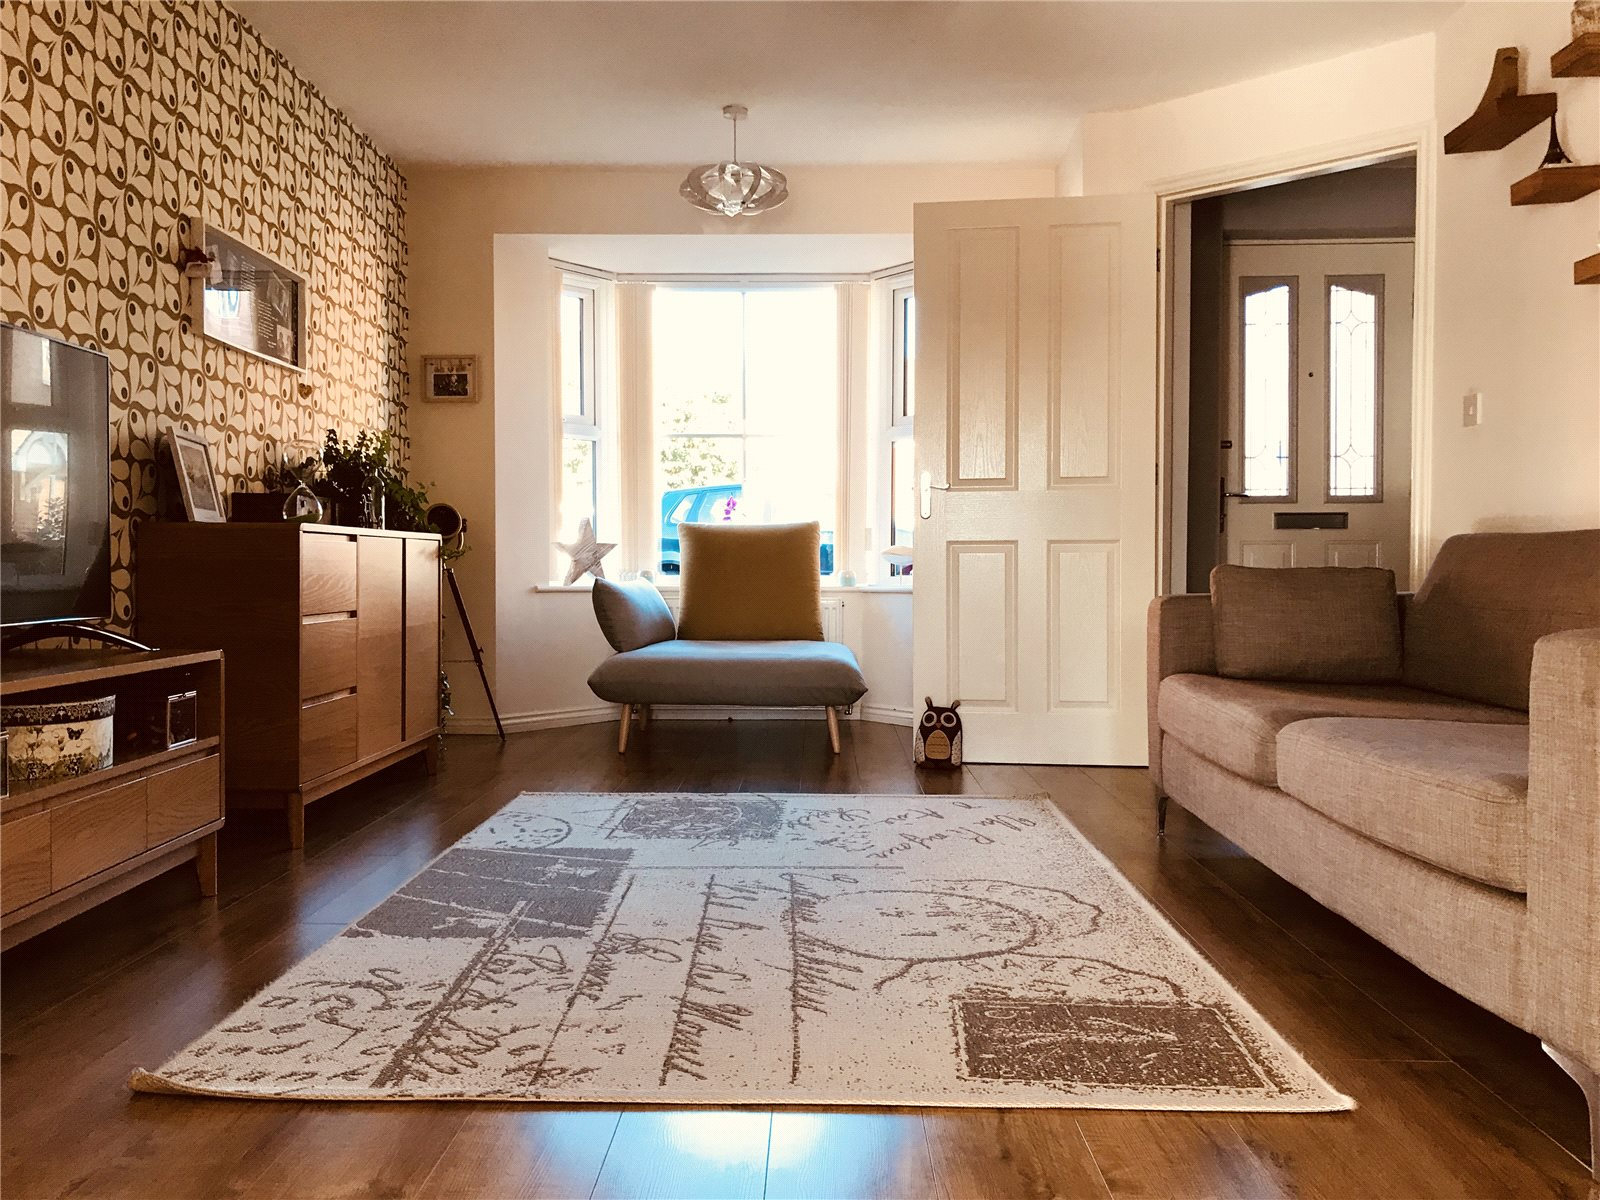 Property for sale in Wakefield, Interior of reception room